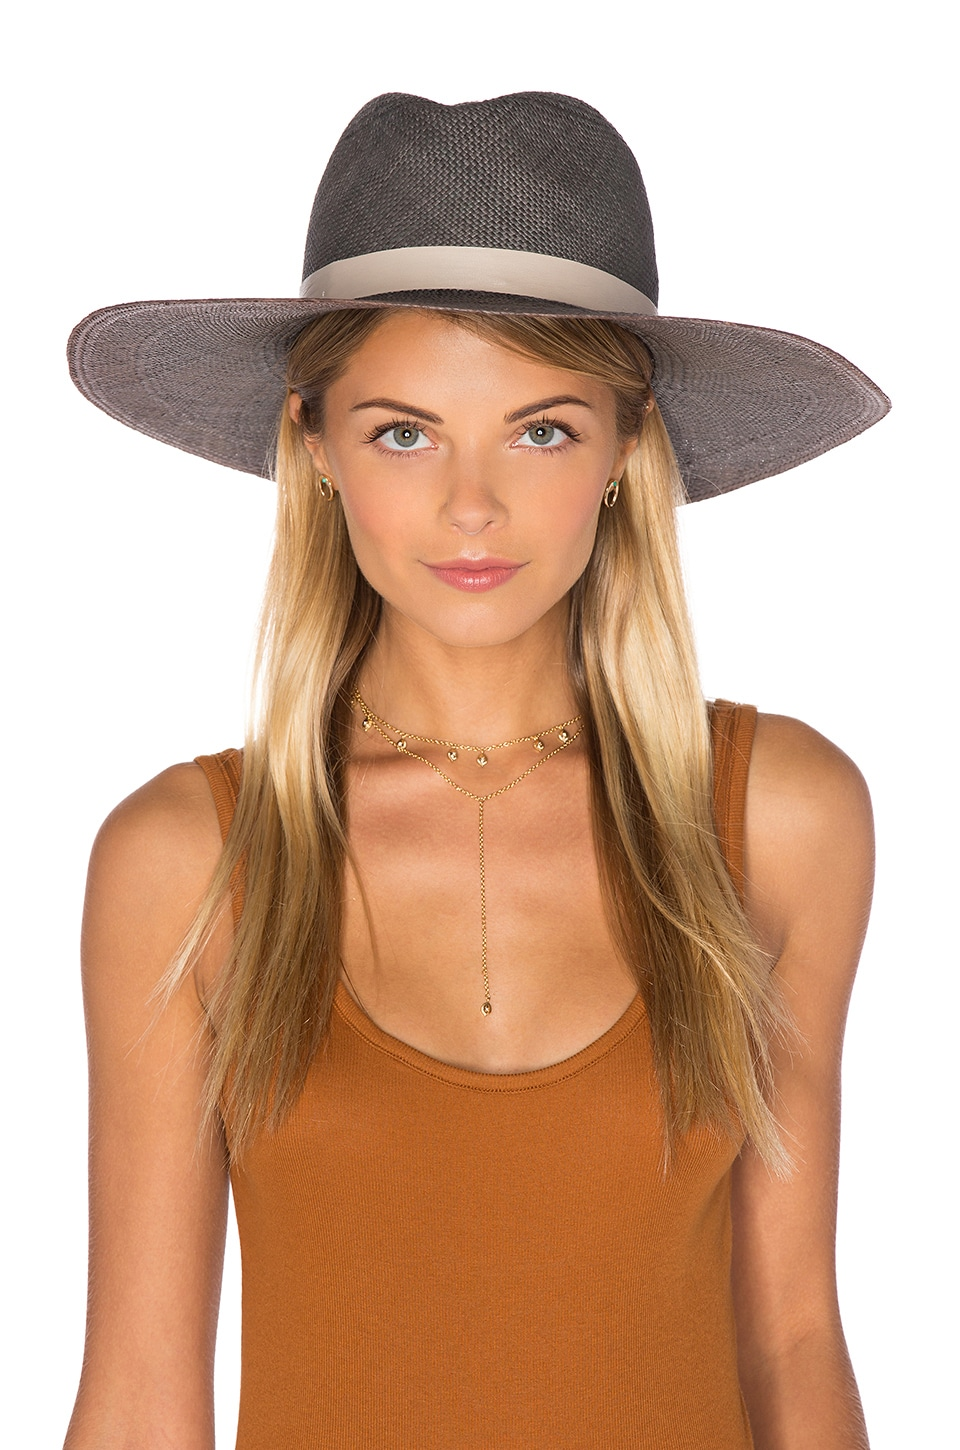 Dahlia Wide Brimmed Panama Hat at REVOLVE